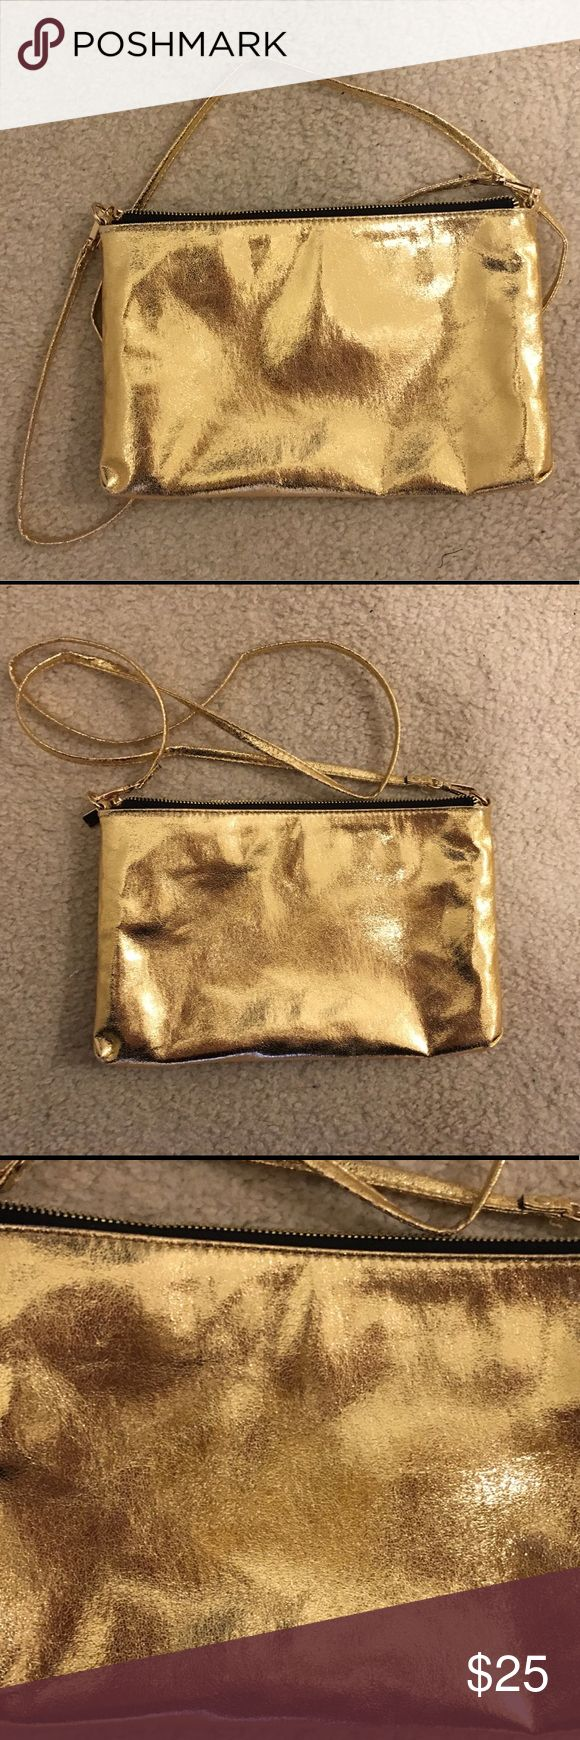 Forever 21 Gold Bag Has detachable Strap. Can be worn as crossbody or on Shoulder or carried as a clutch Forever 21 Bags Crossbody Bags